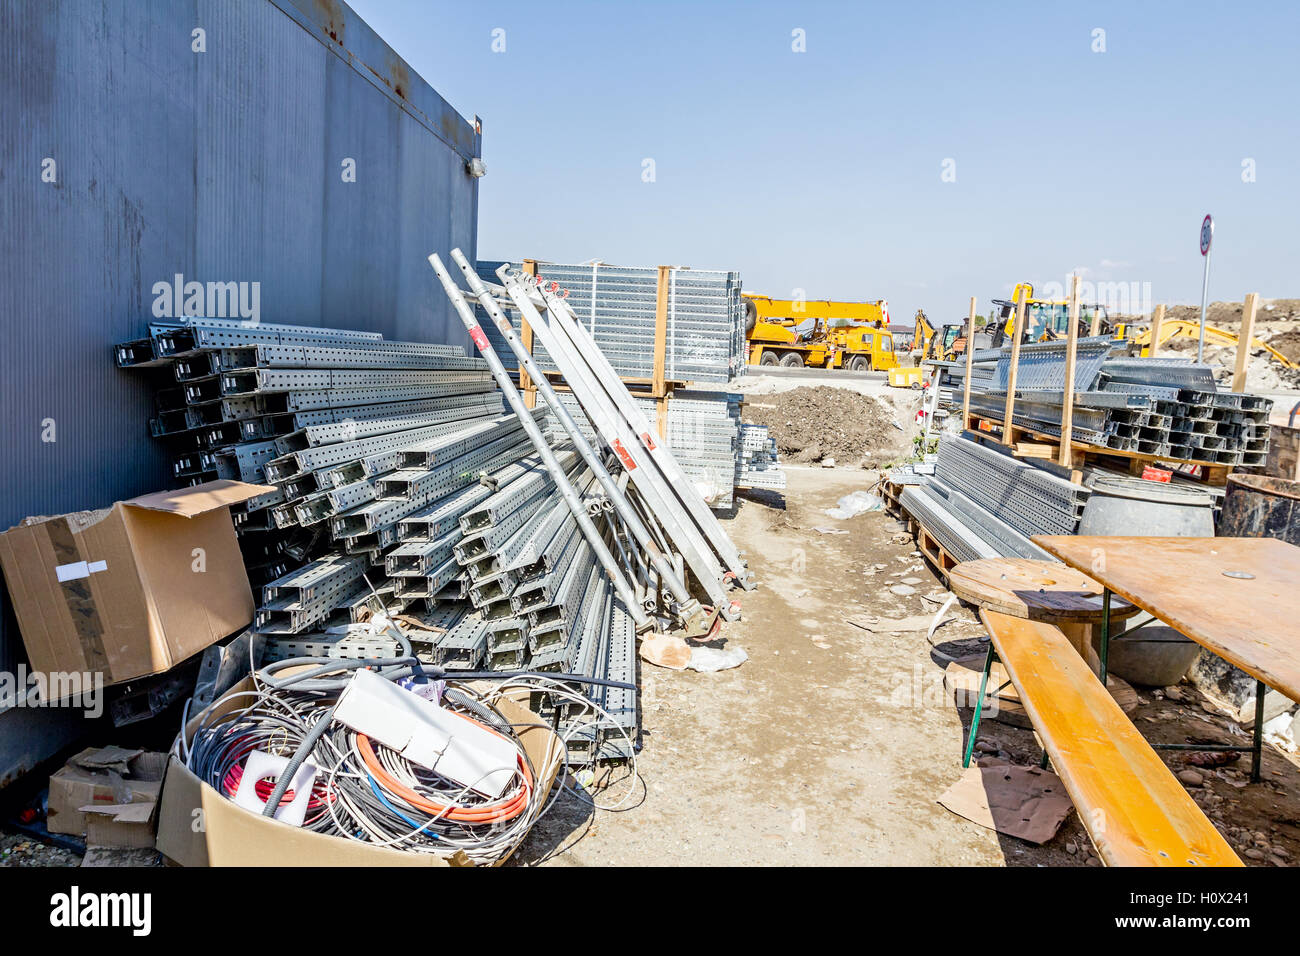 Cable trays for different usage at construction site in the improvised warehouse. - Stock Image